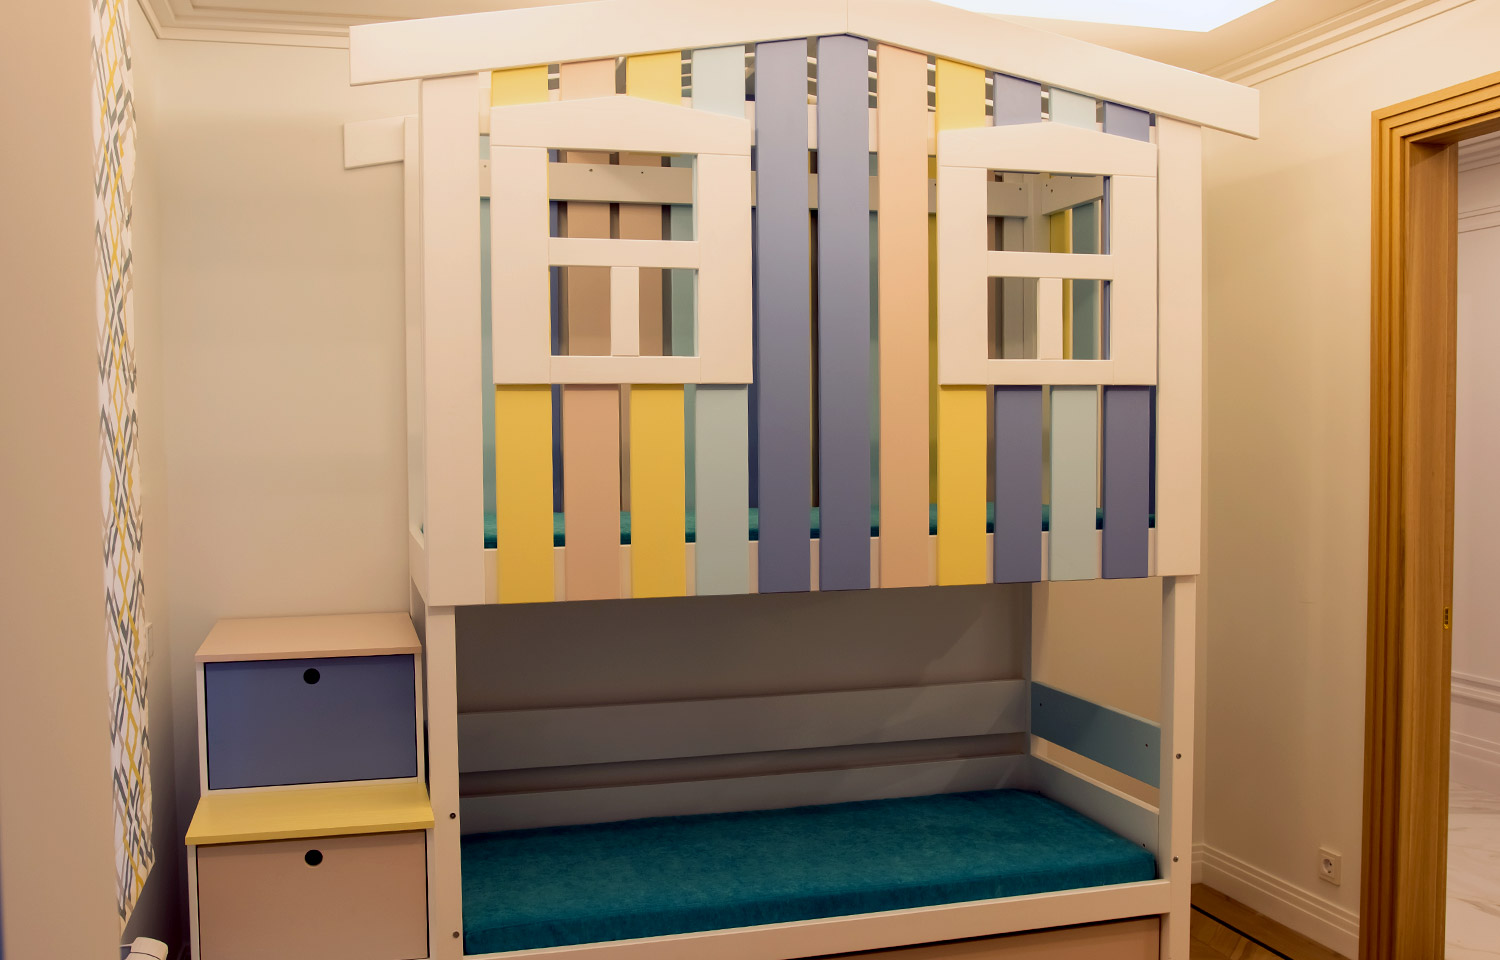 A bed with a tall cabin-shaped canopy. The canopy has a slatted wooden exterior with windows.